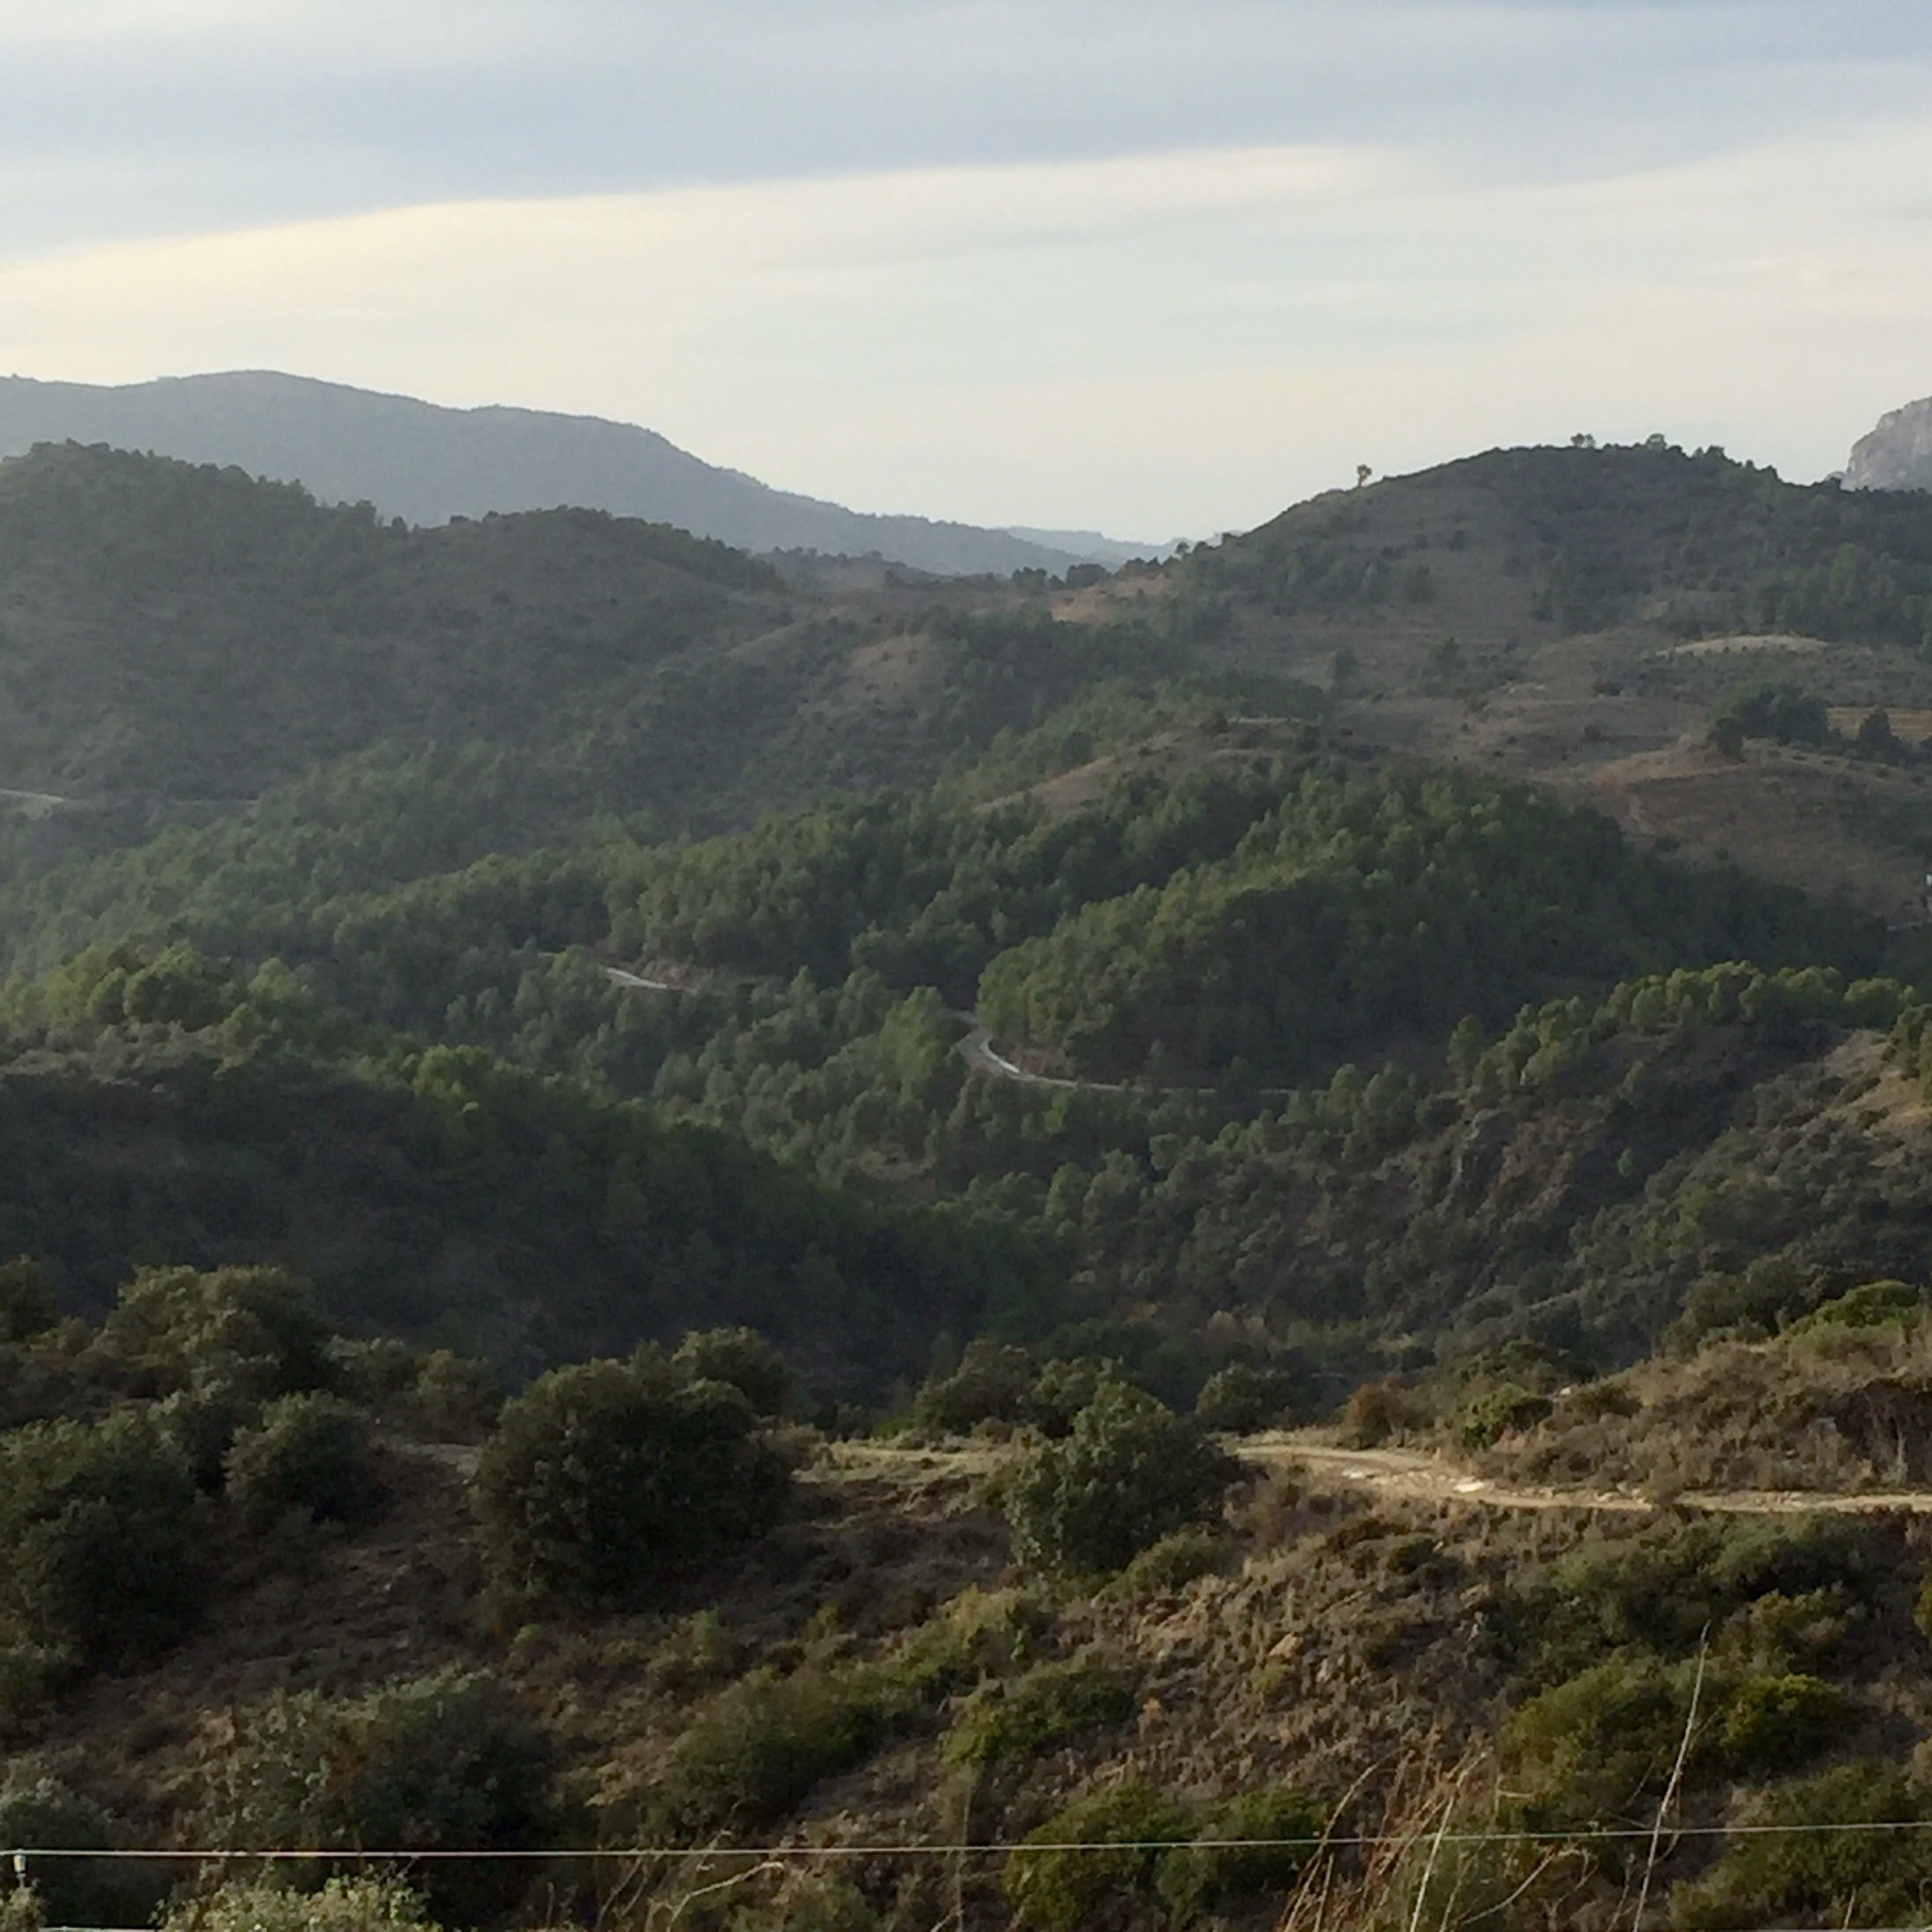 Winding roads in Priorat